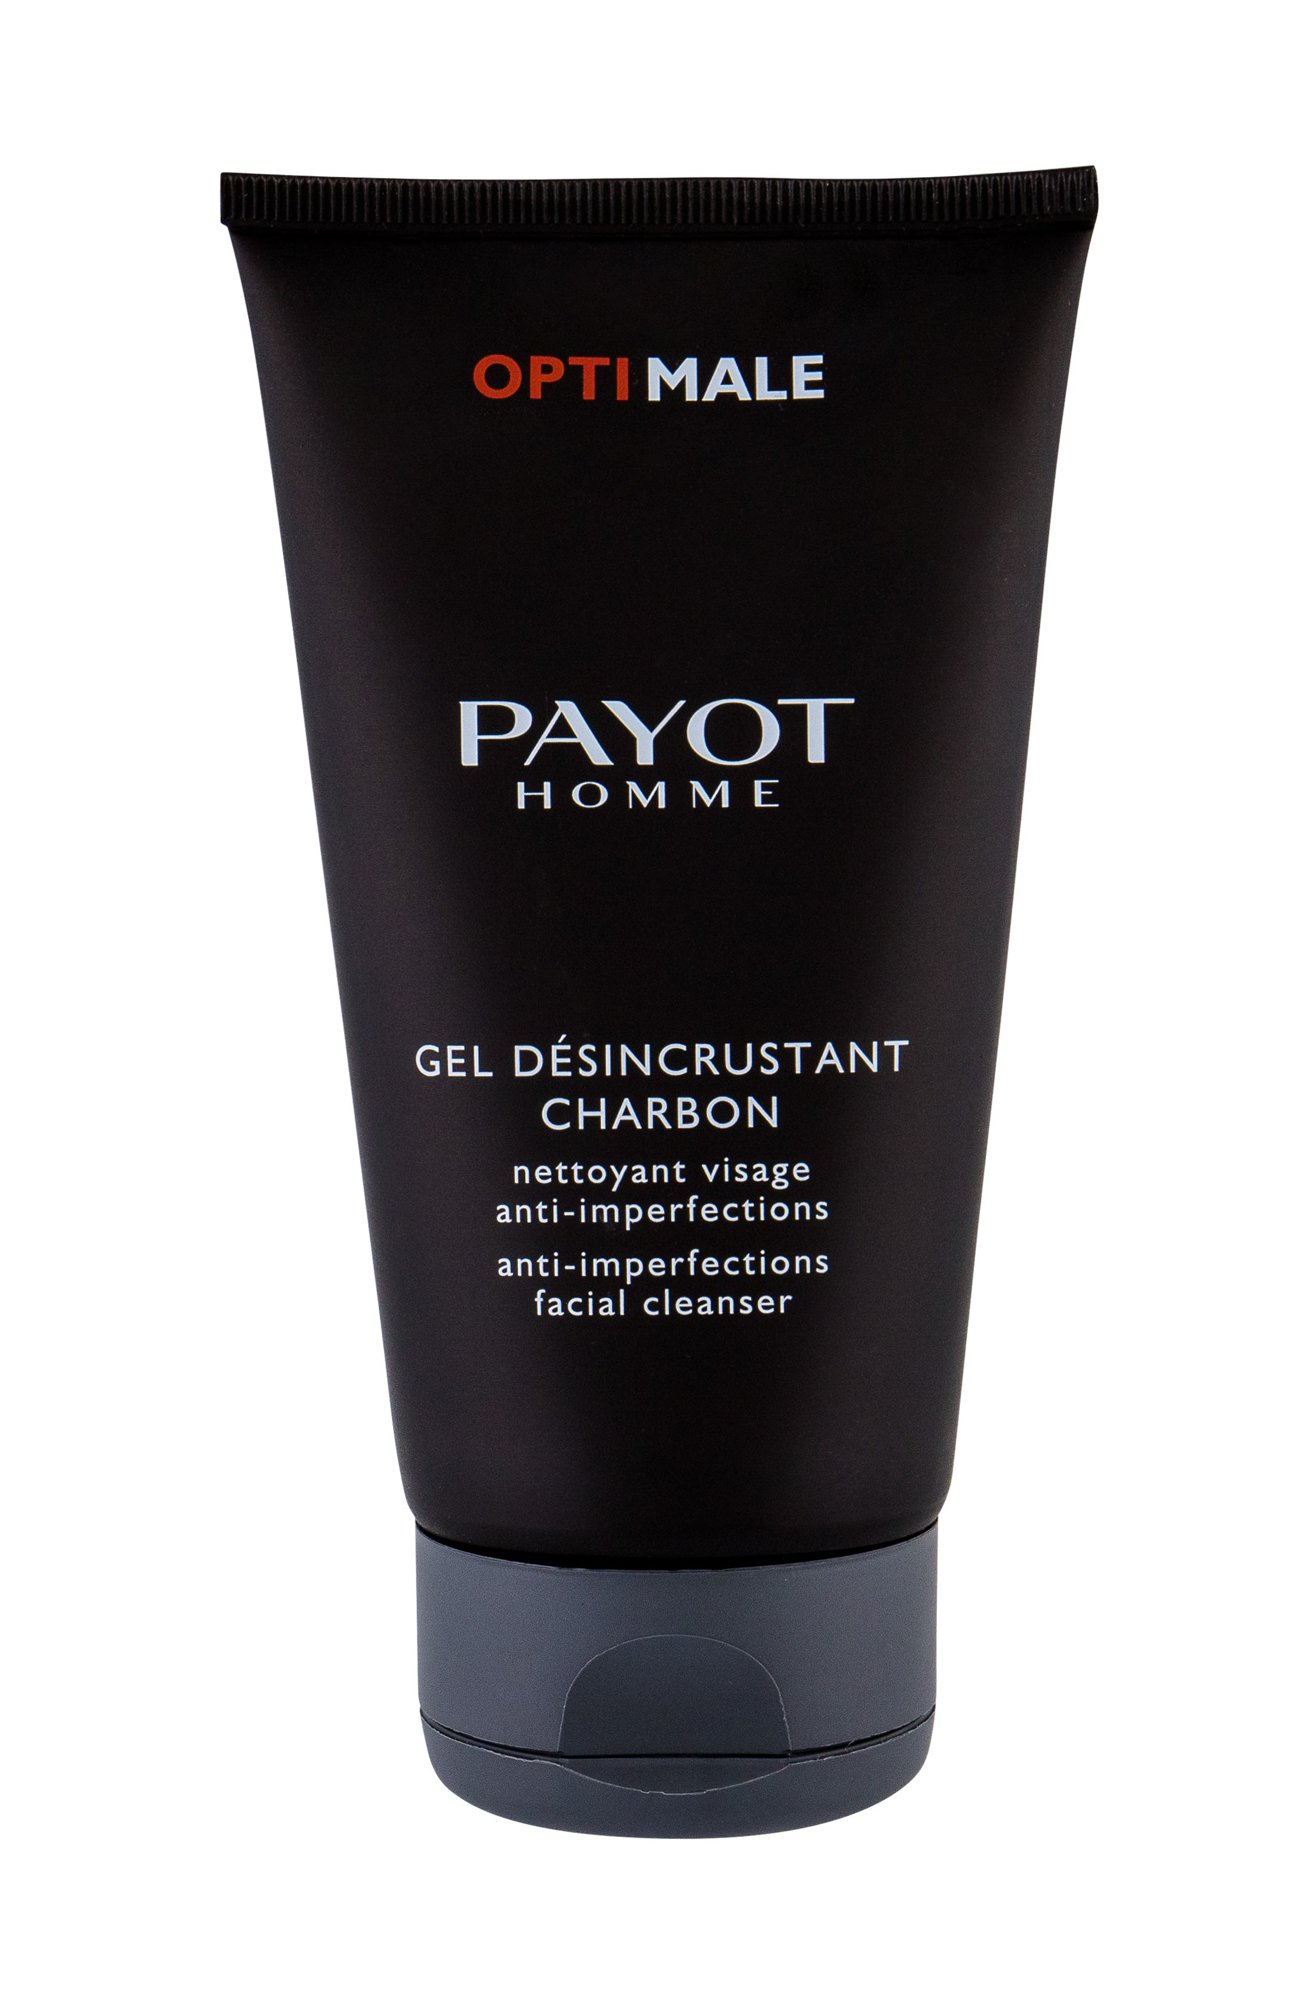 PAYOT Homme Optimale Anti-Imperfections (Čisticí gel, M, 150 ml, Tester)